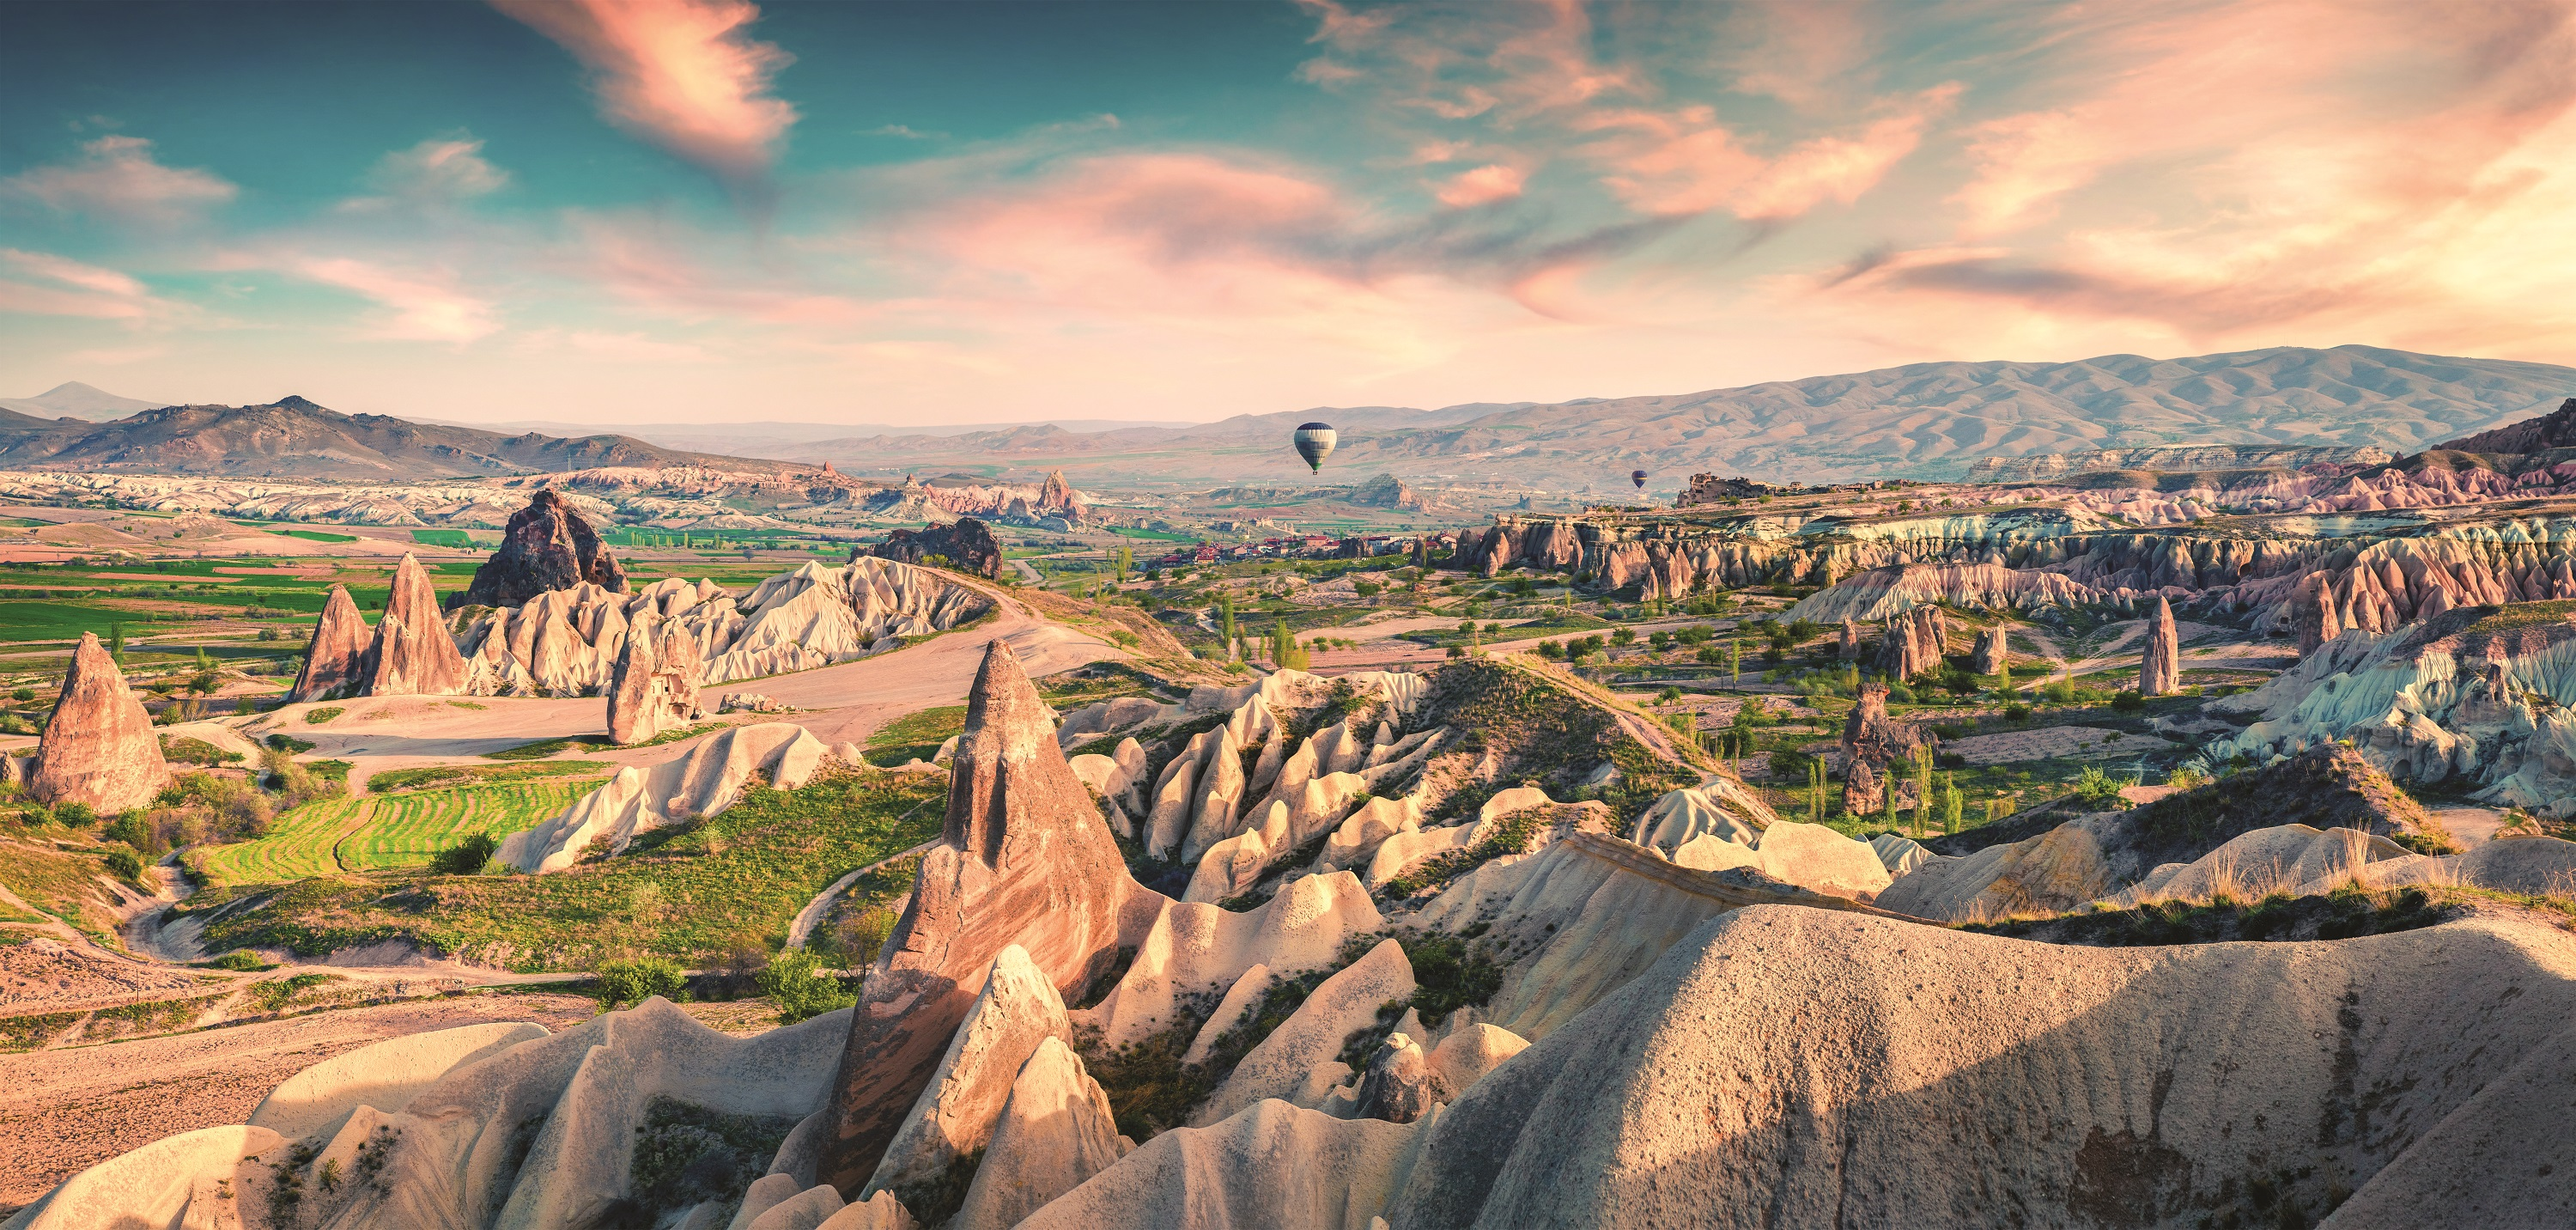 Nevsehir Province in the Cappadocia region